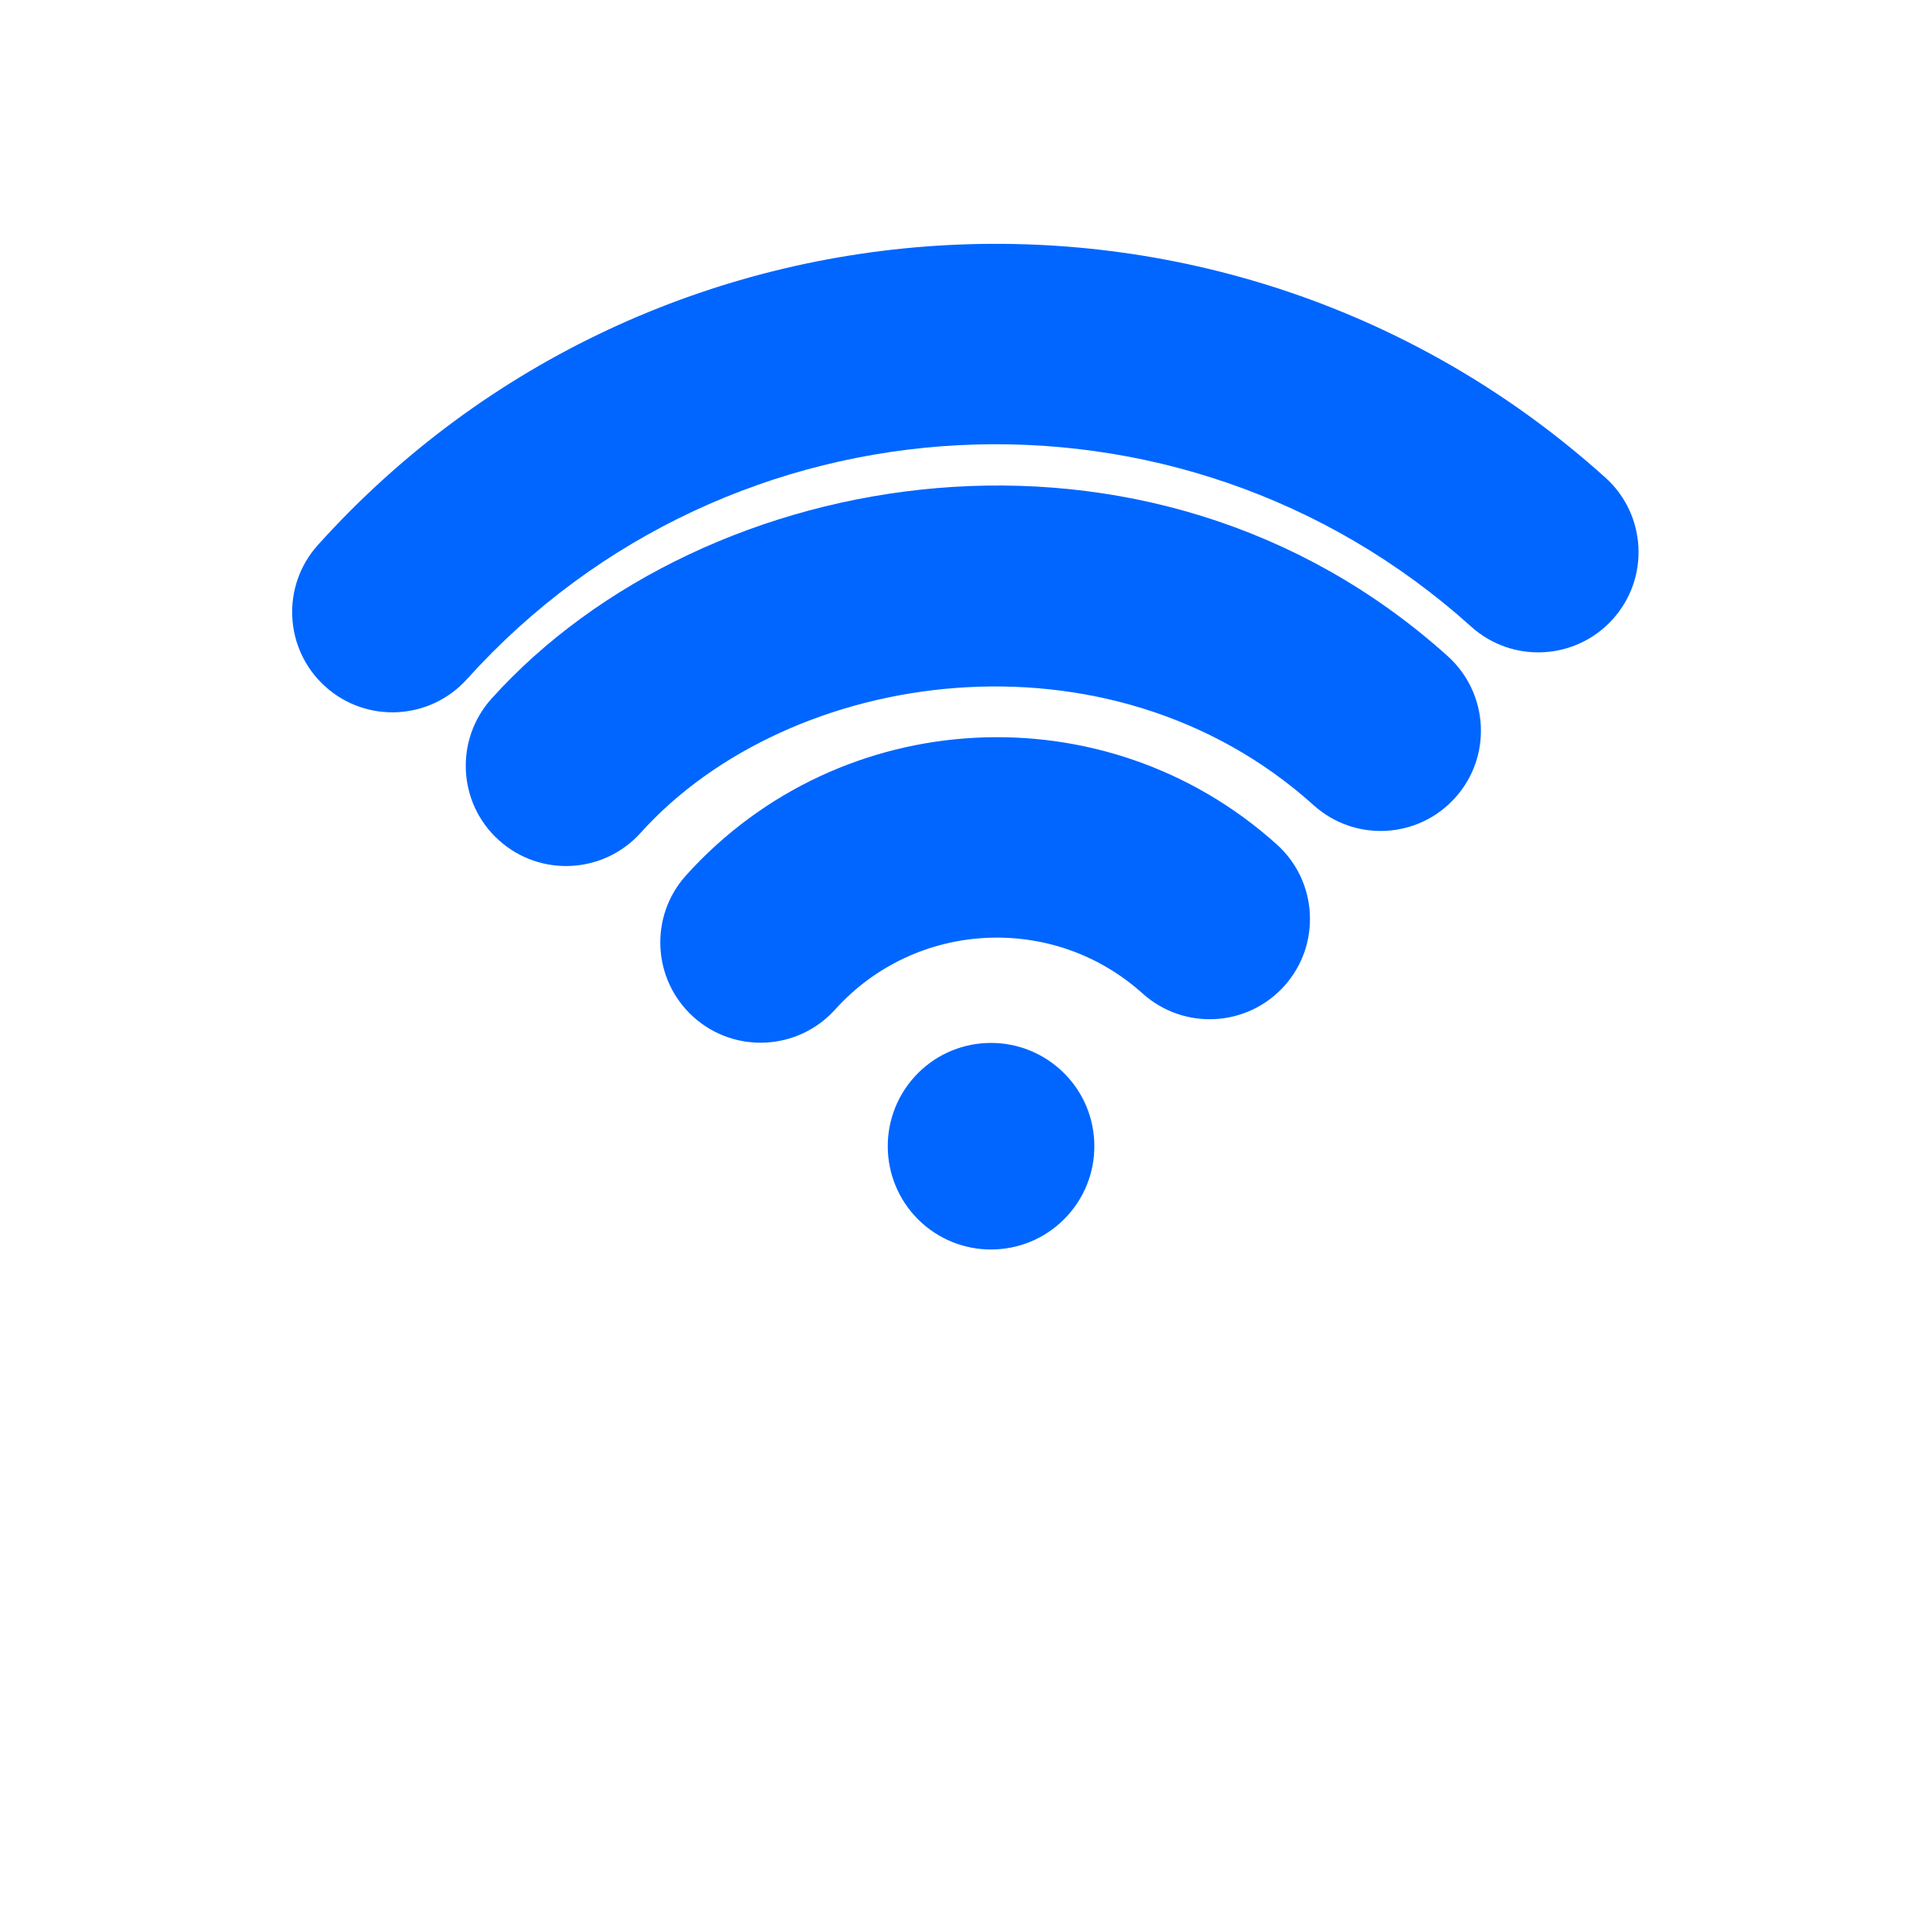 Wifi symbol png. Icons free and downloads